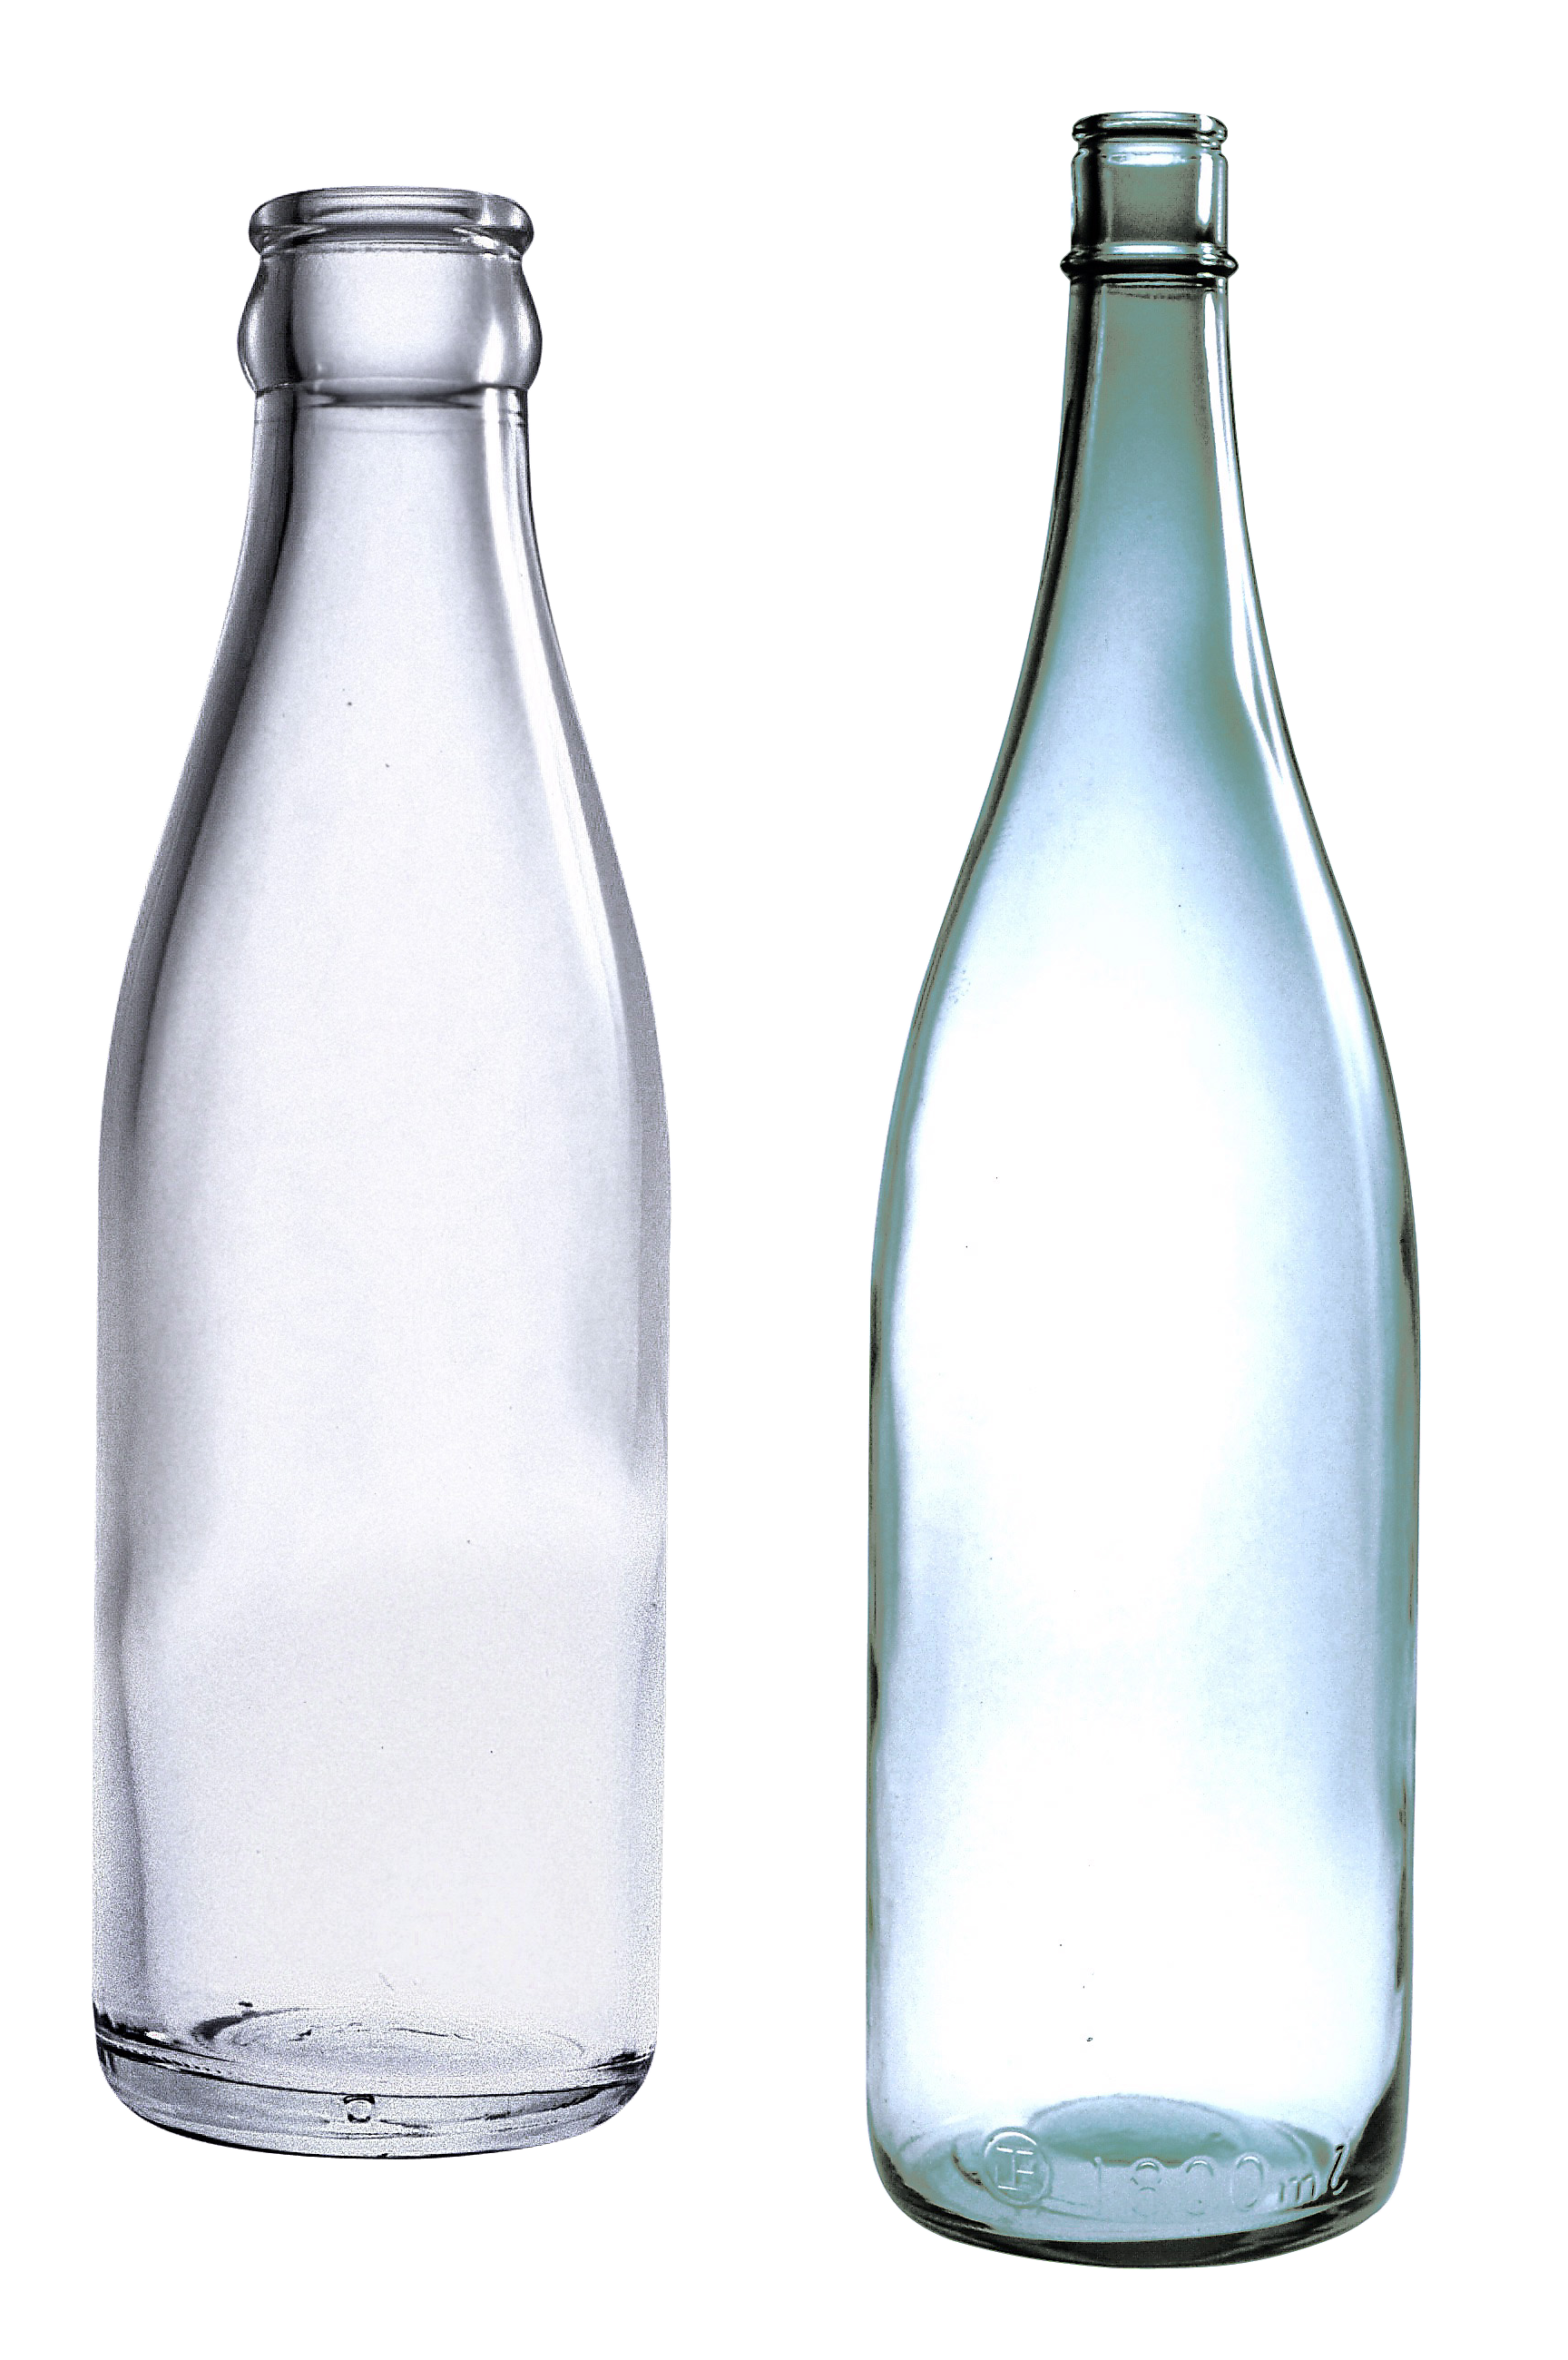 empty glass bottles PNG image - Water Glass HD PNG